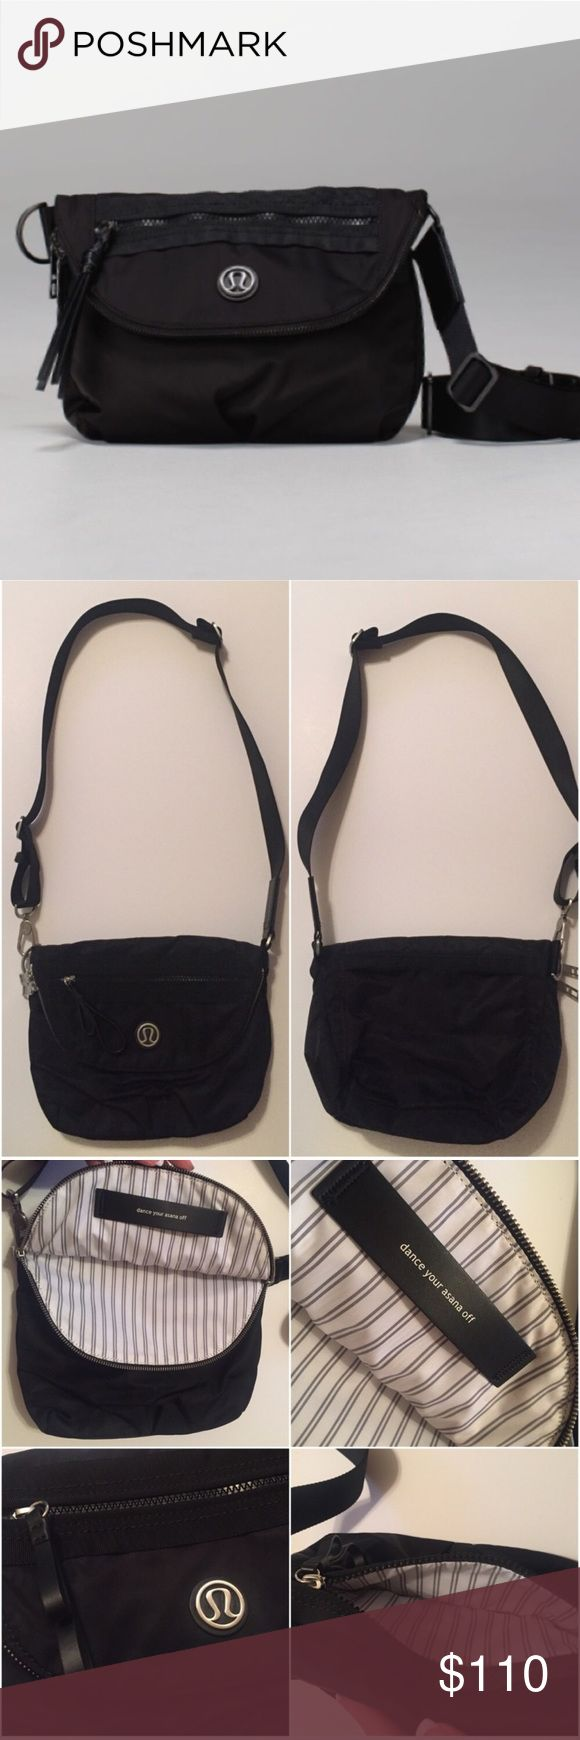 Selling this Lululemon Festival Bag on Poshmark! My username is: lnation818. #shopmycloset #poshmark #fashion #shopping #style #forsale #lululemon athletica #Handbags